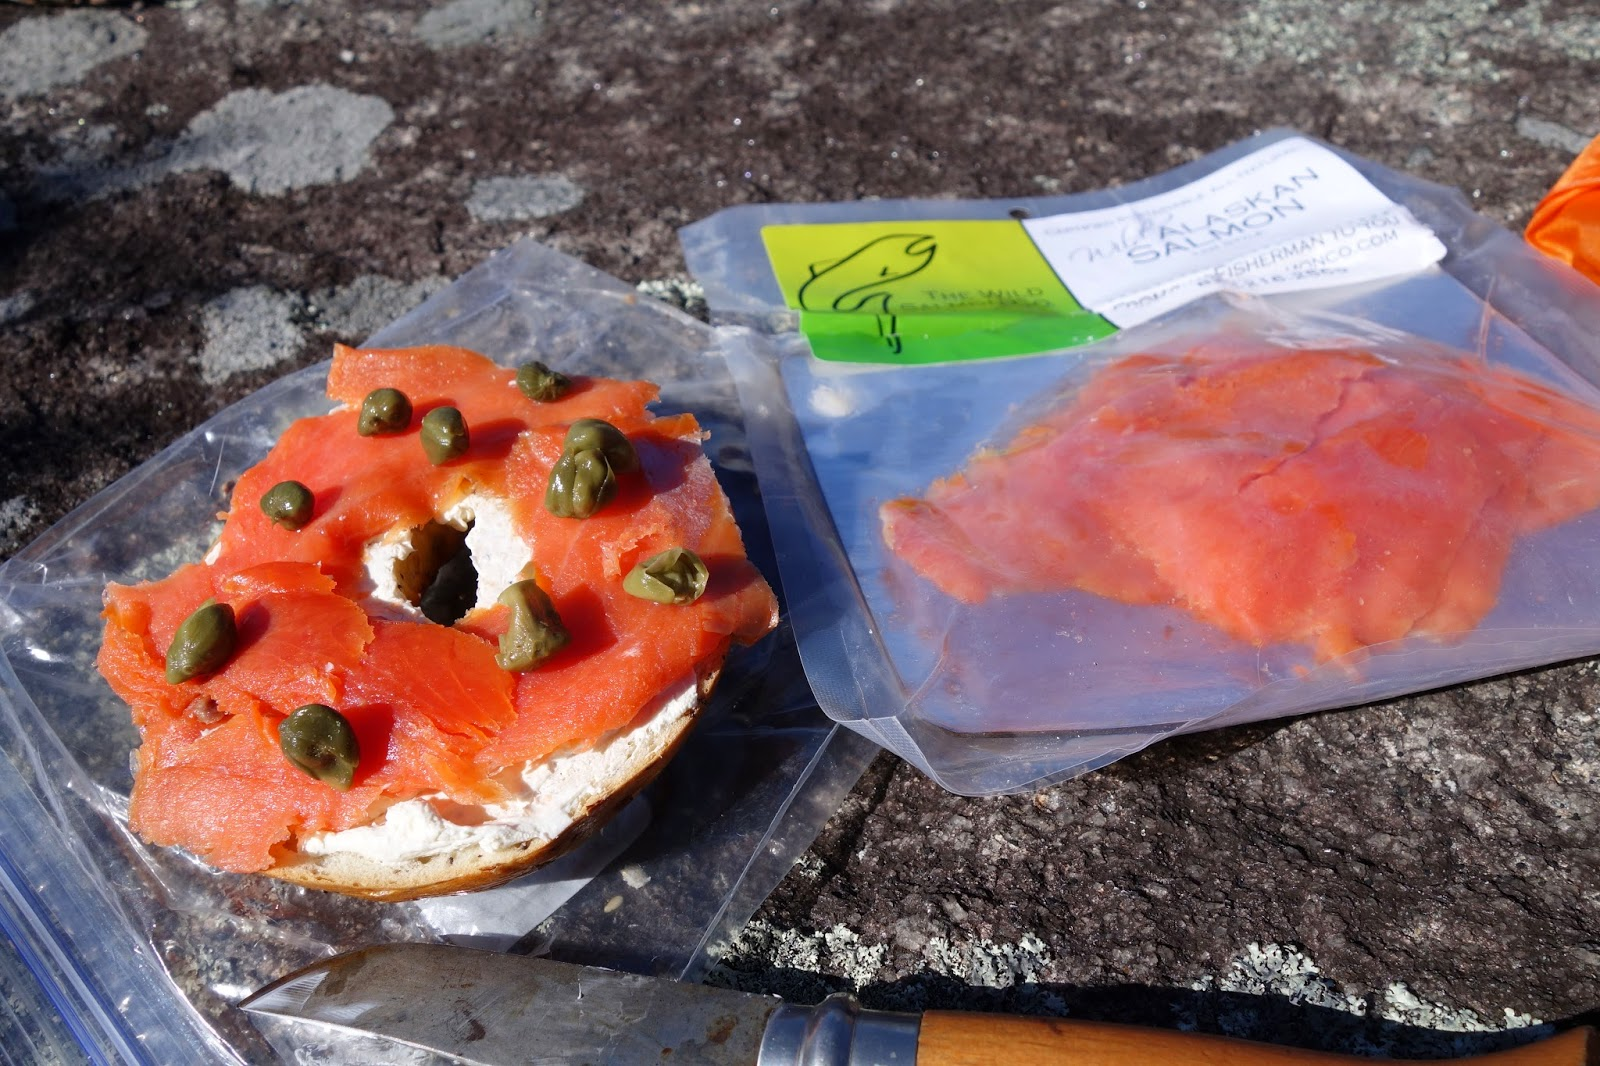 Bagle with salmon